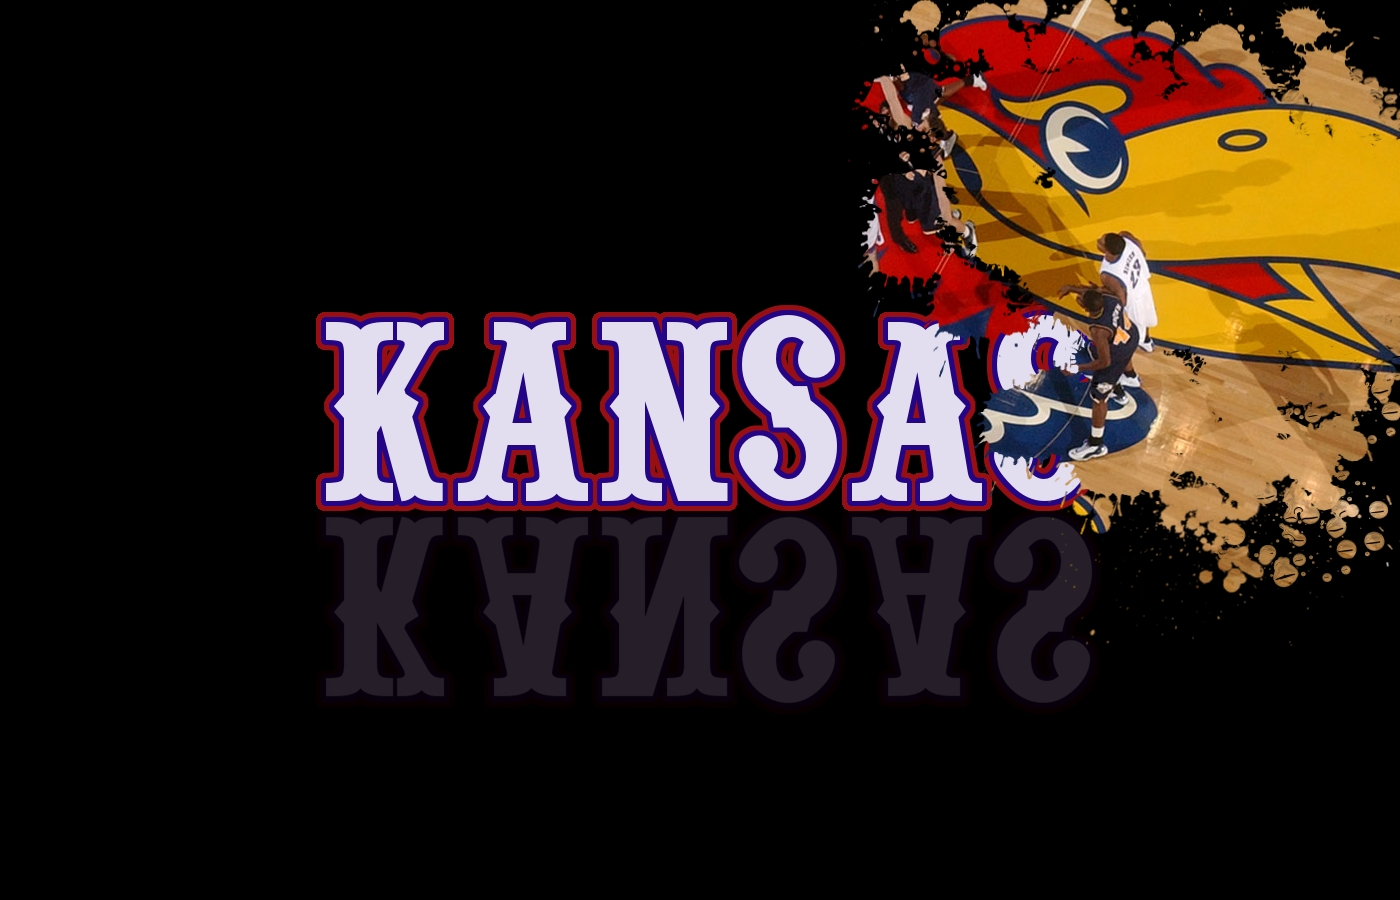 Kansas Band Wallpaper